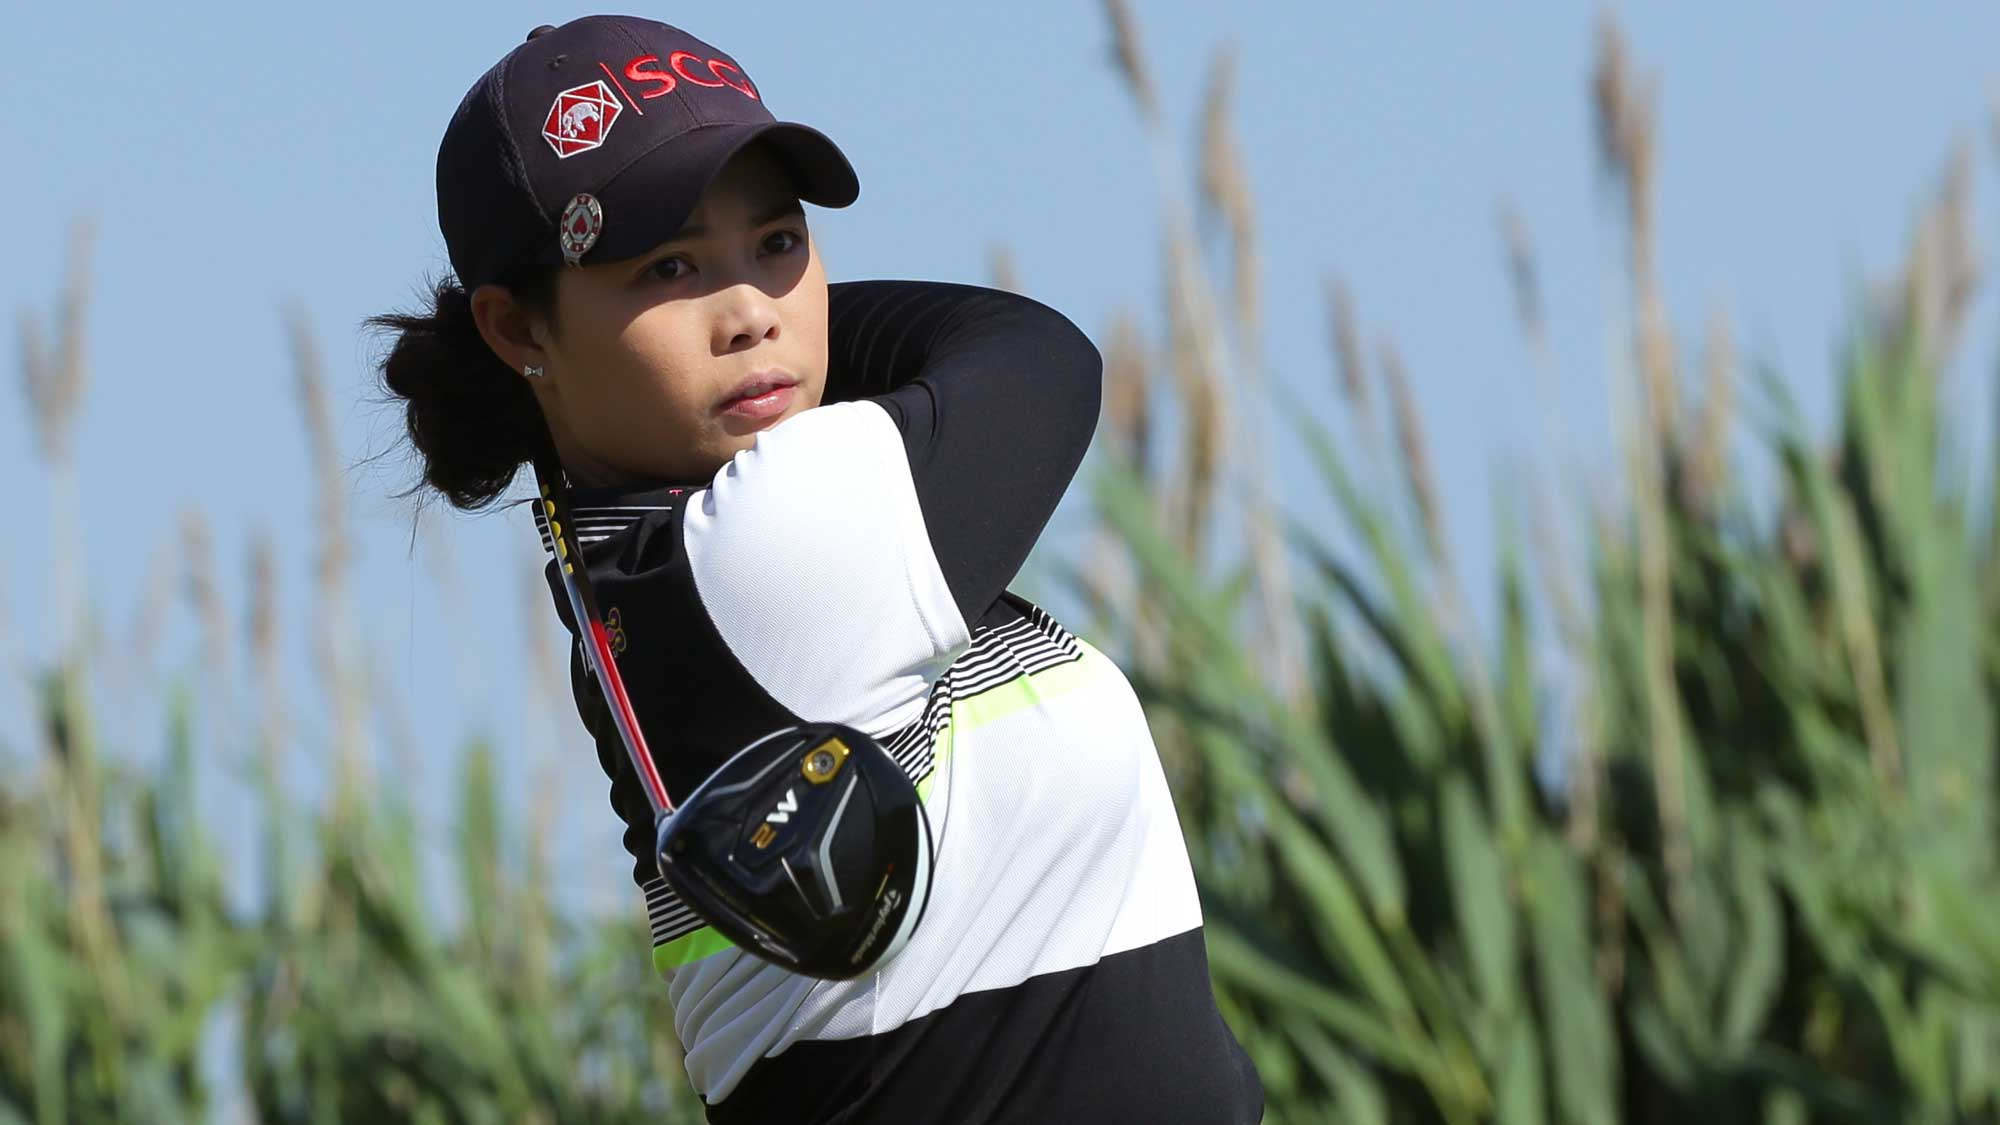 Ko stays on as golf's No. 1 after ranking blunder